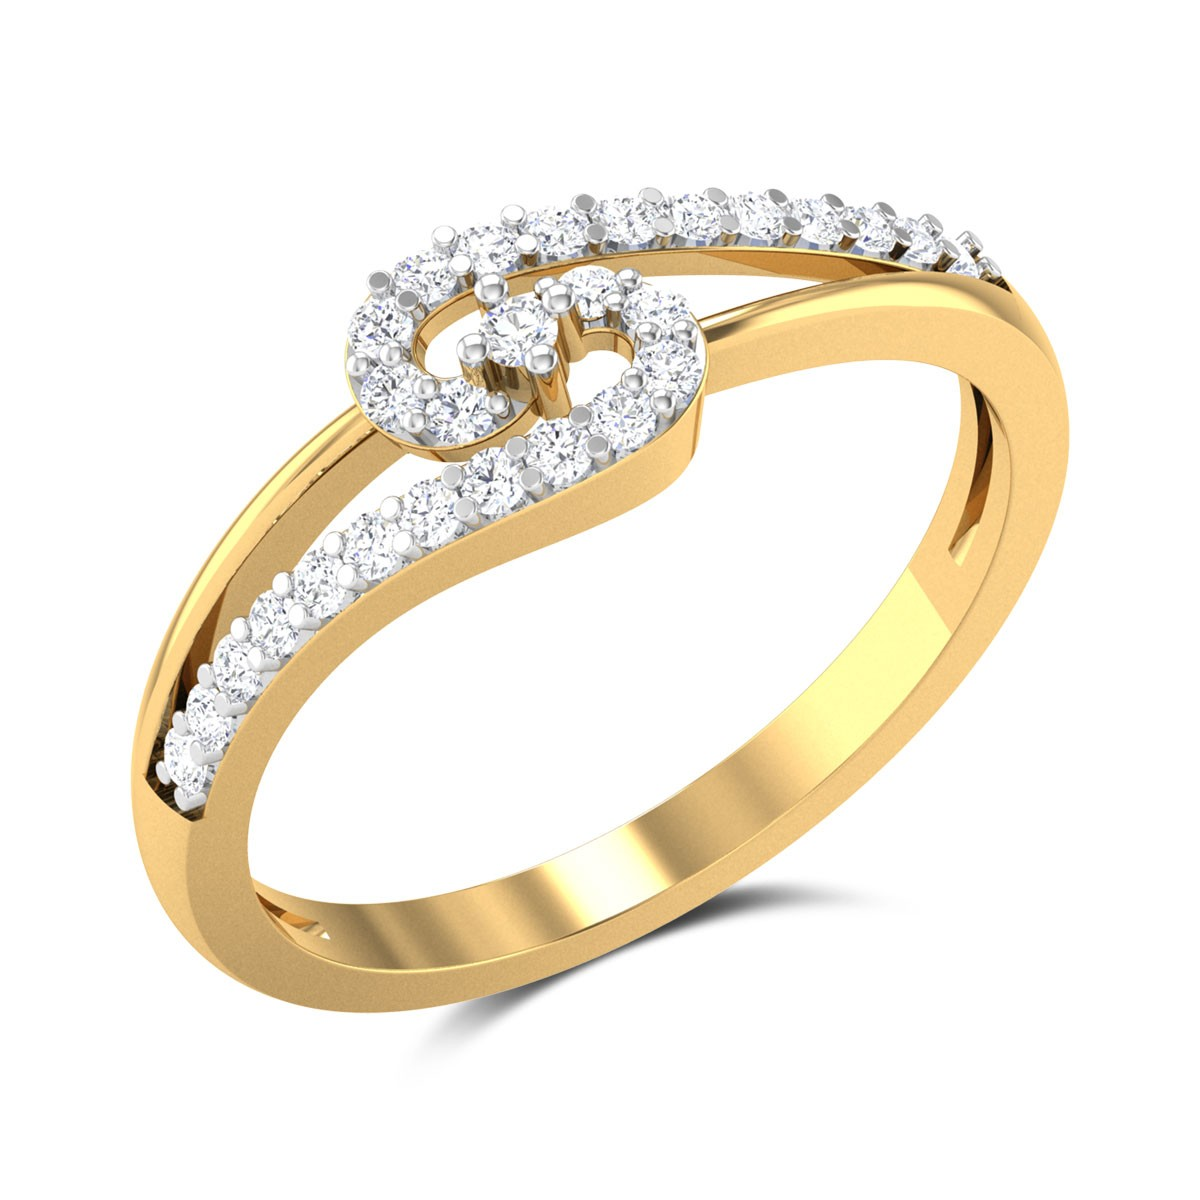 Rachel Diamond Ring